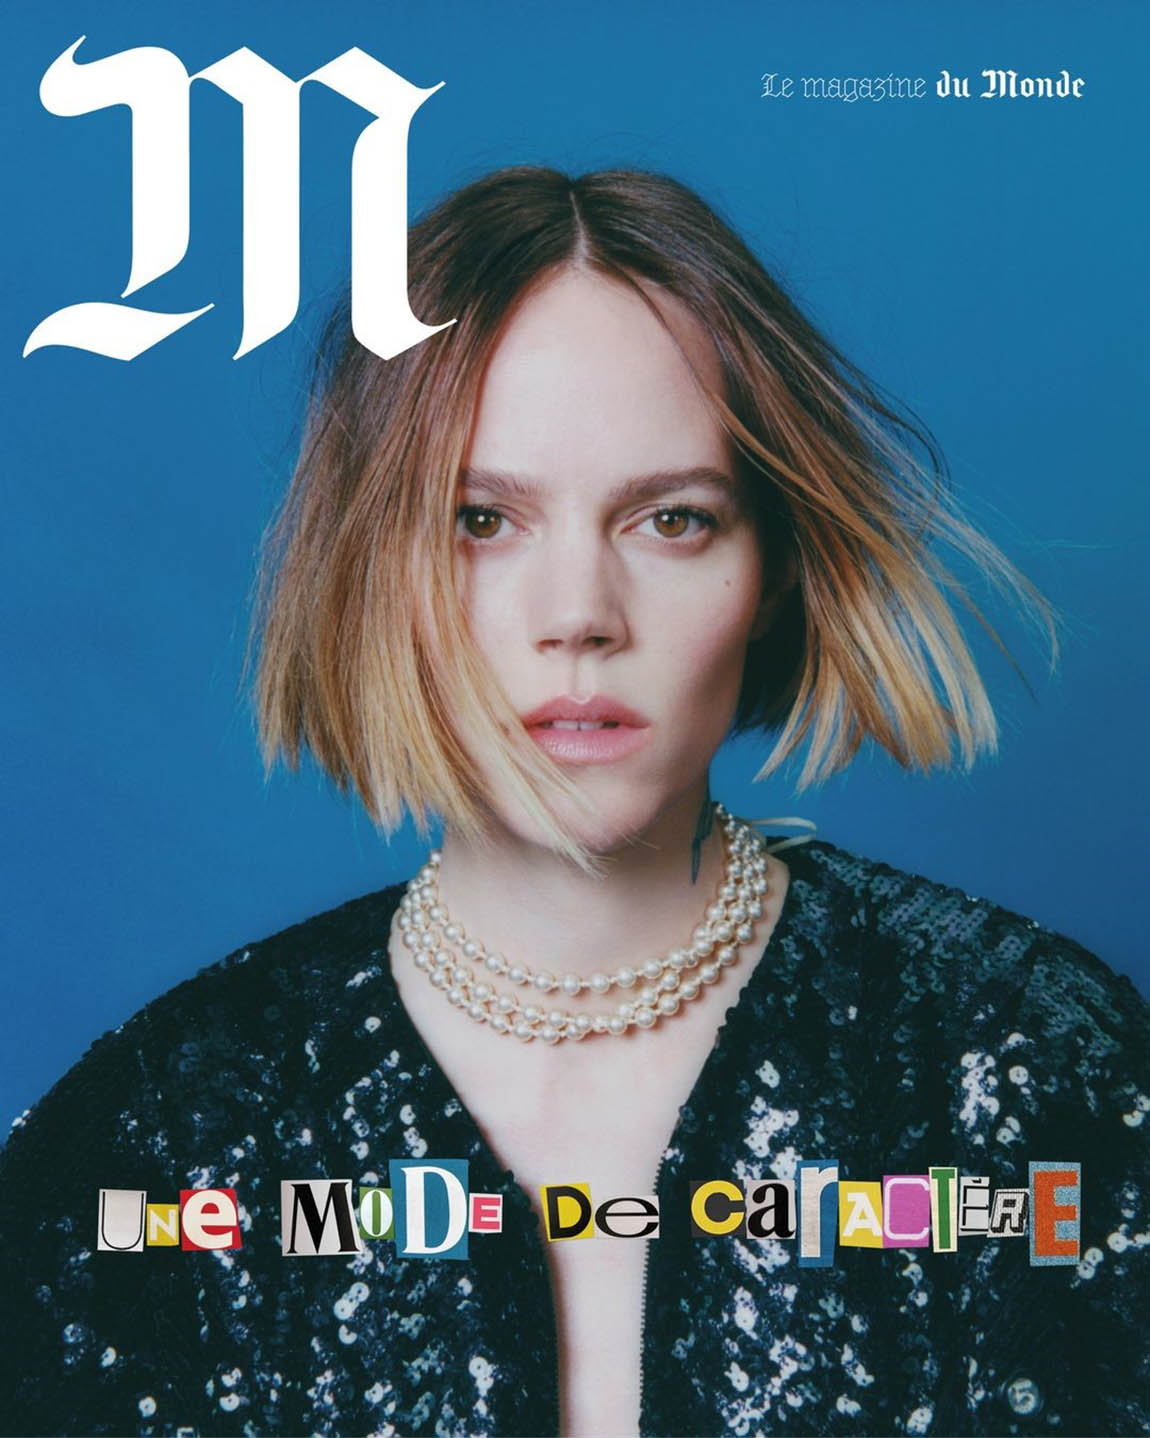 Freja Beha Erichsen covers M Le magazine du Monde February 27th, 2021 by Sam Rock